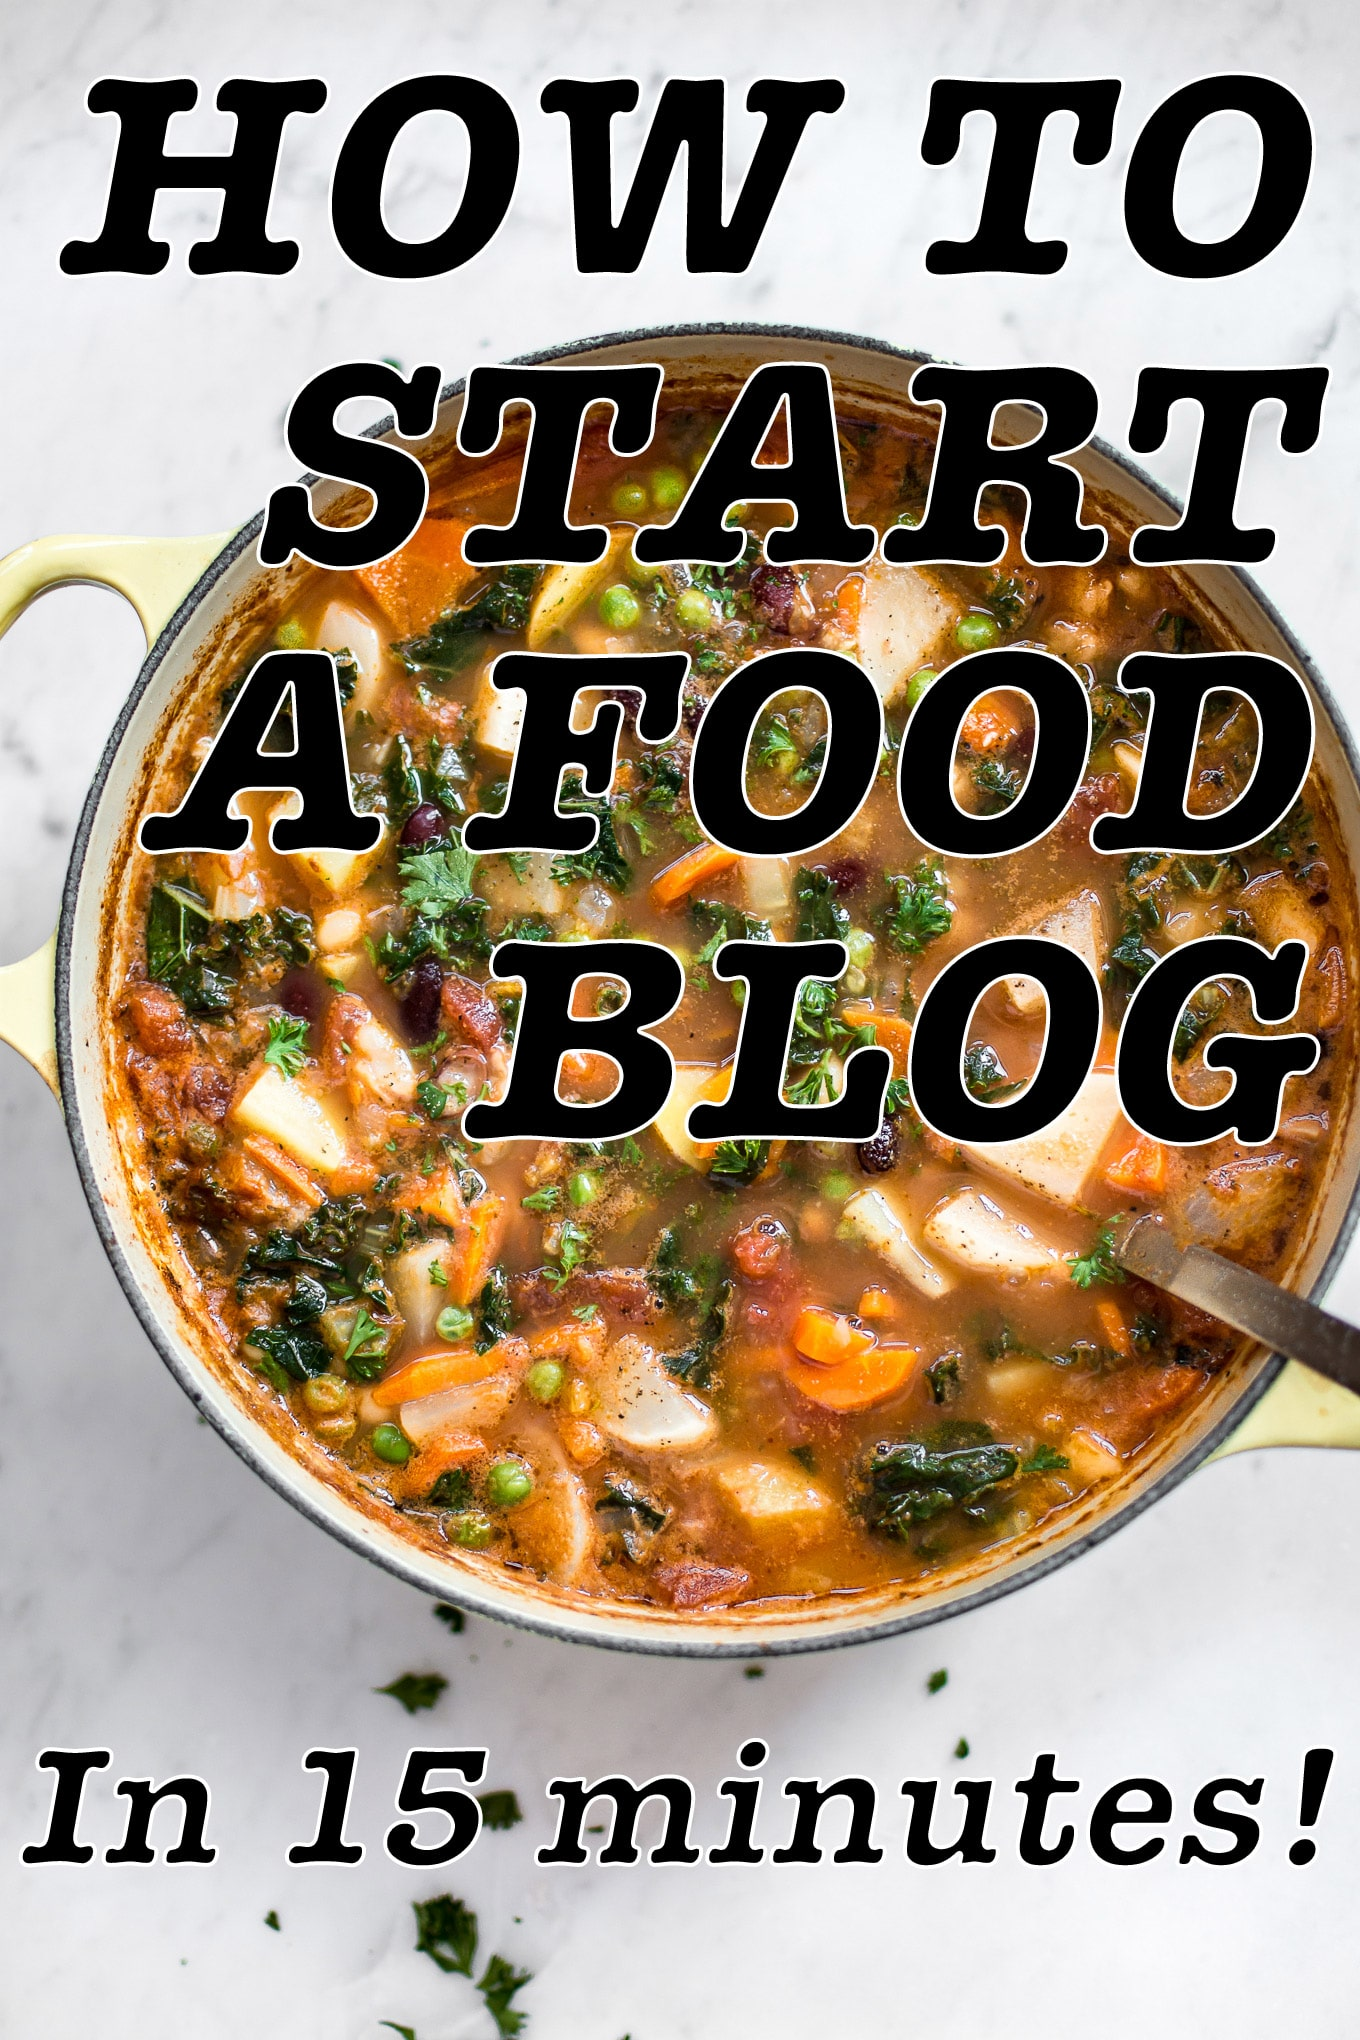 Are you ready to start a food blog? It's easier than you think. This quick guide will get you up and running in no time!